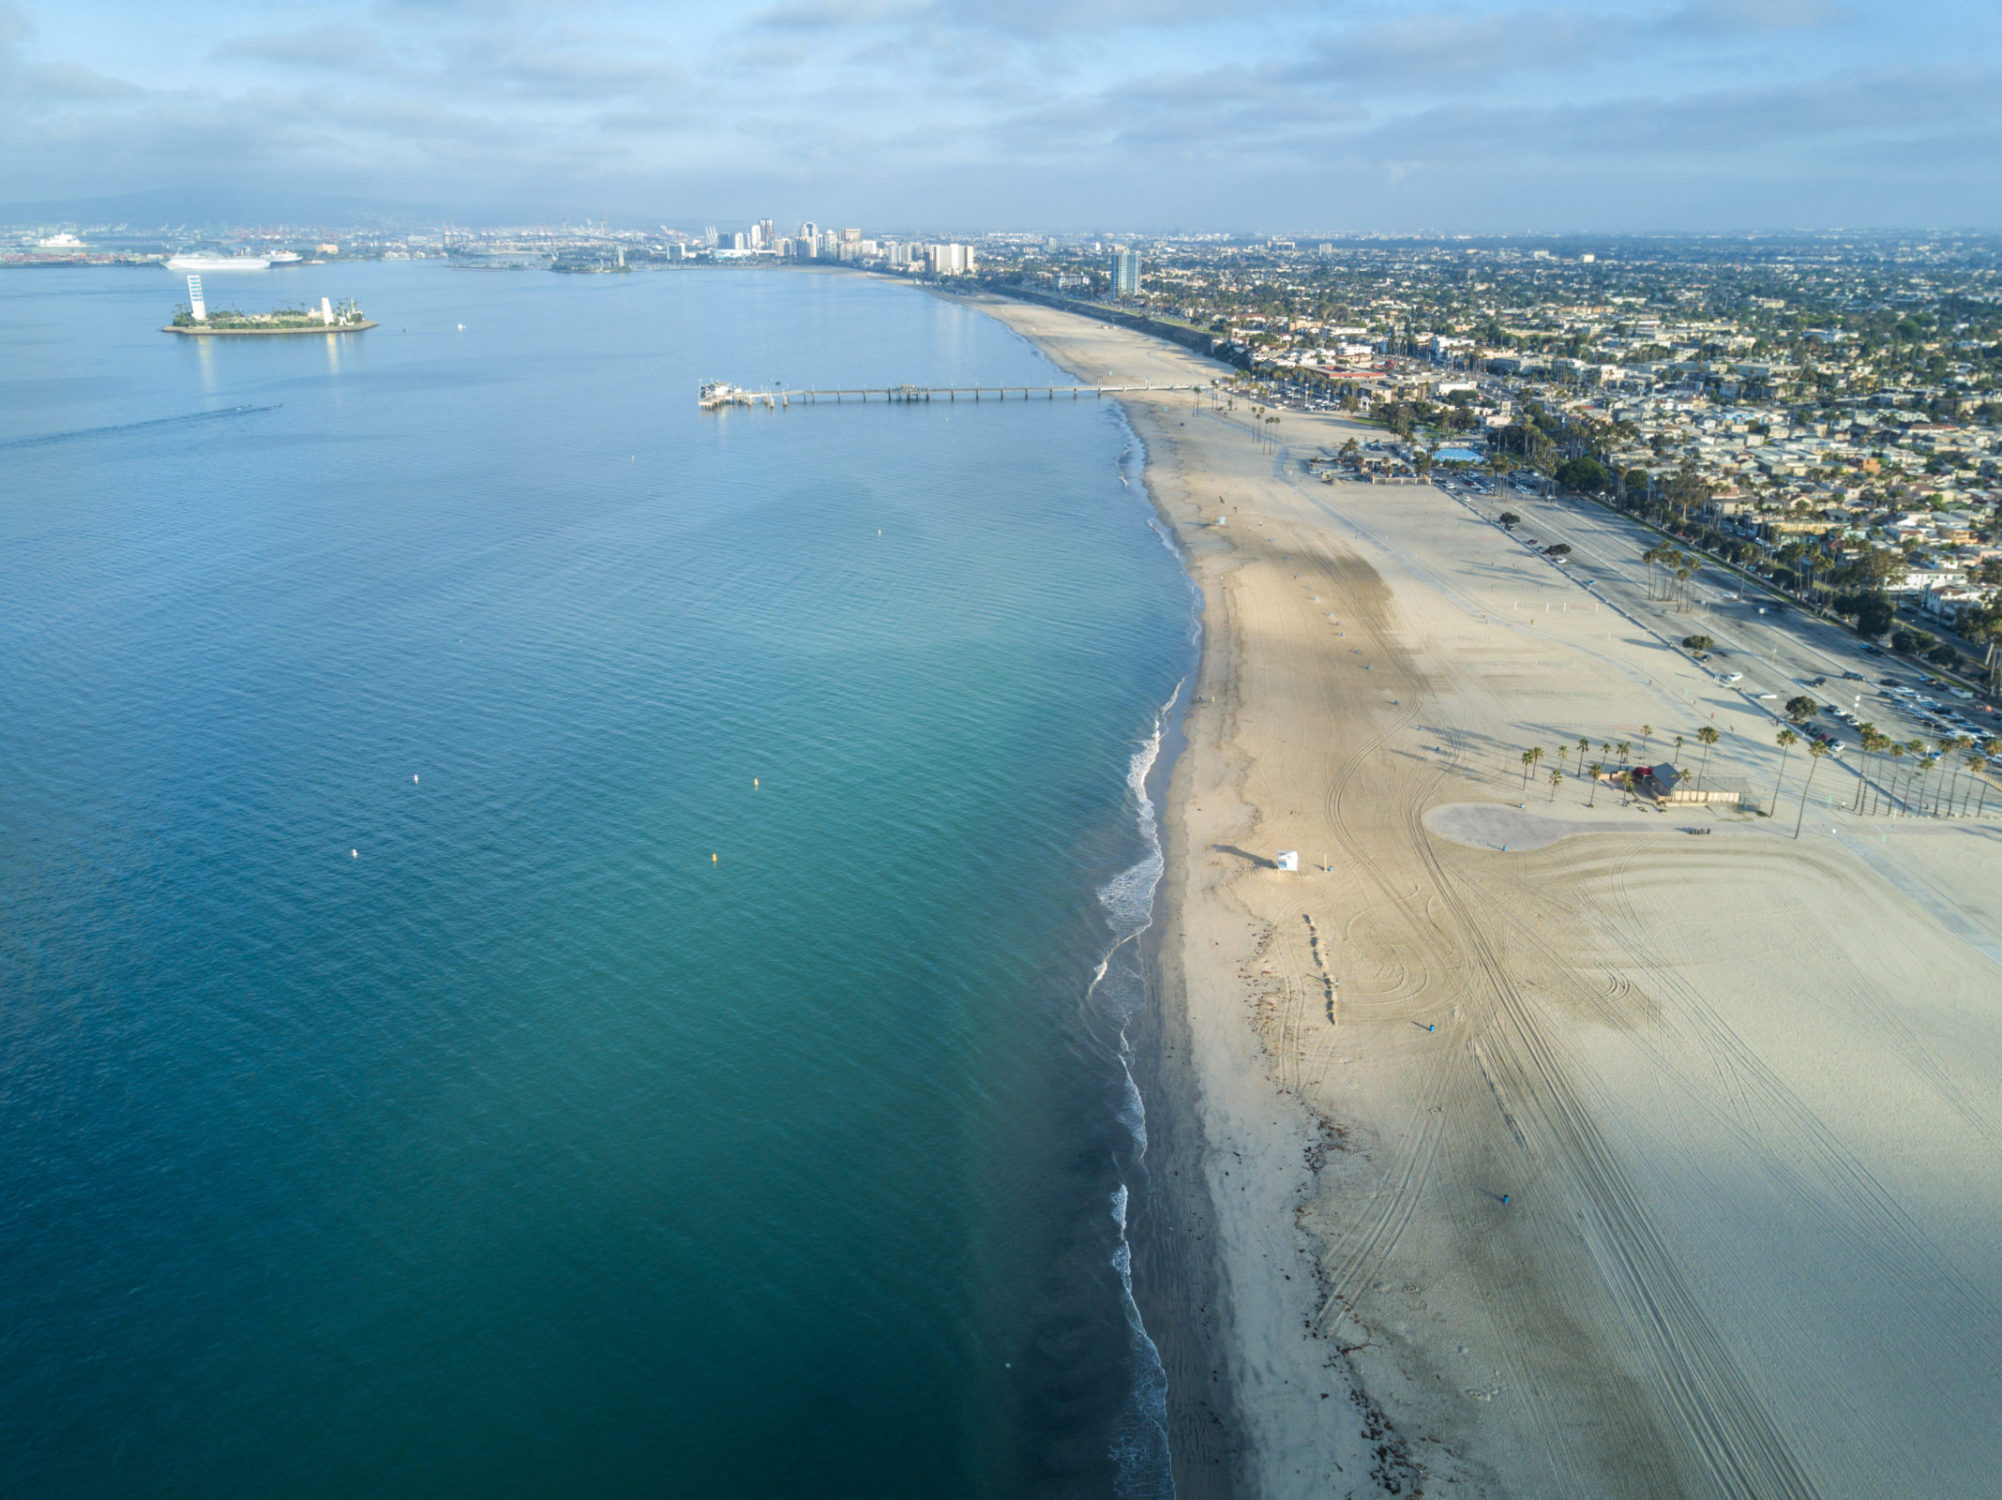 Drone view on Long Beach, USA